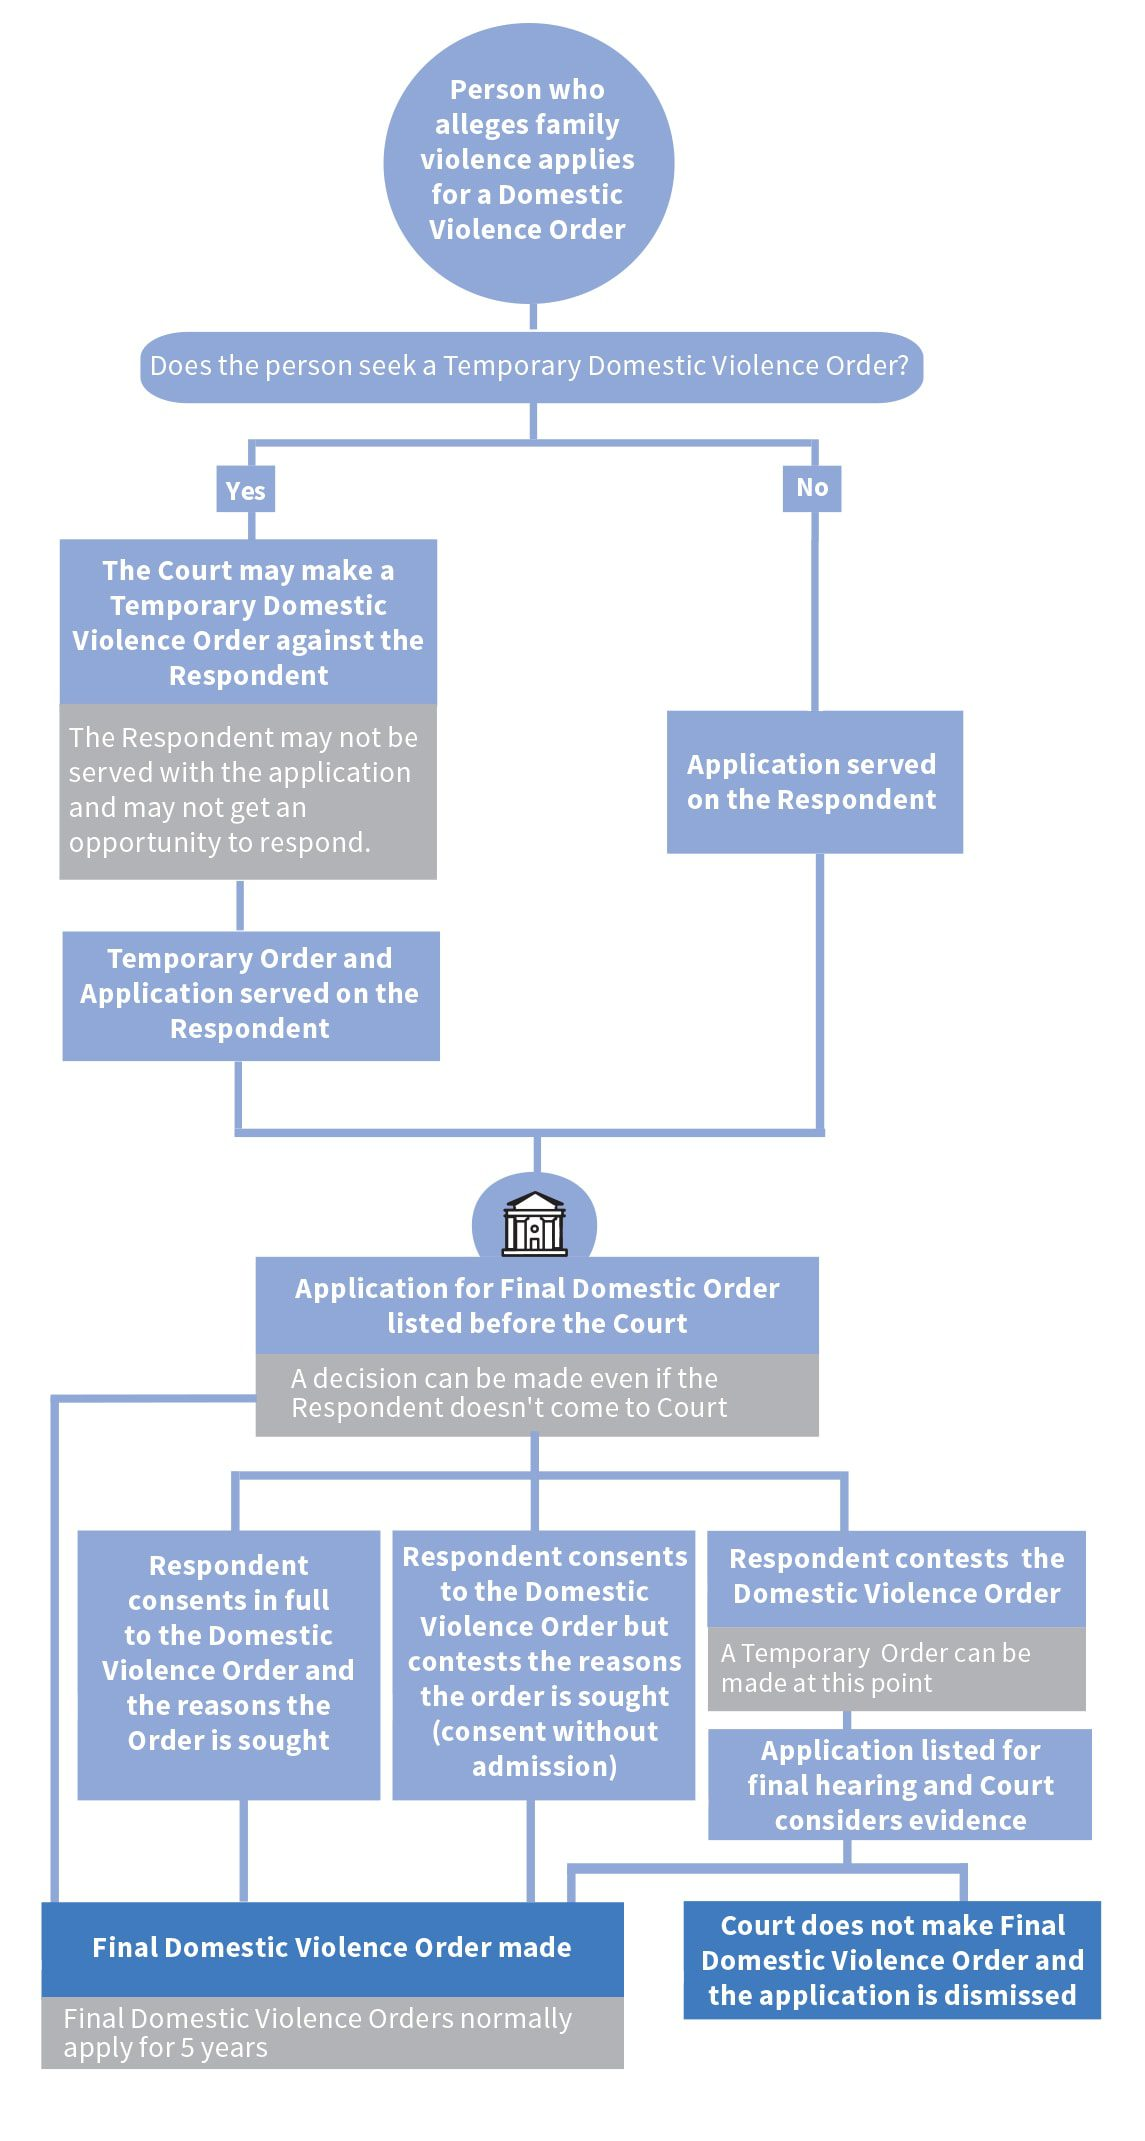 Flowchart of domestic violence proceedings